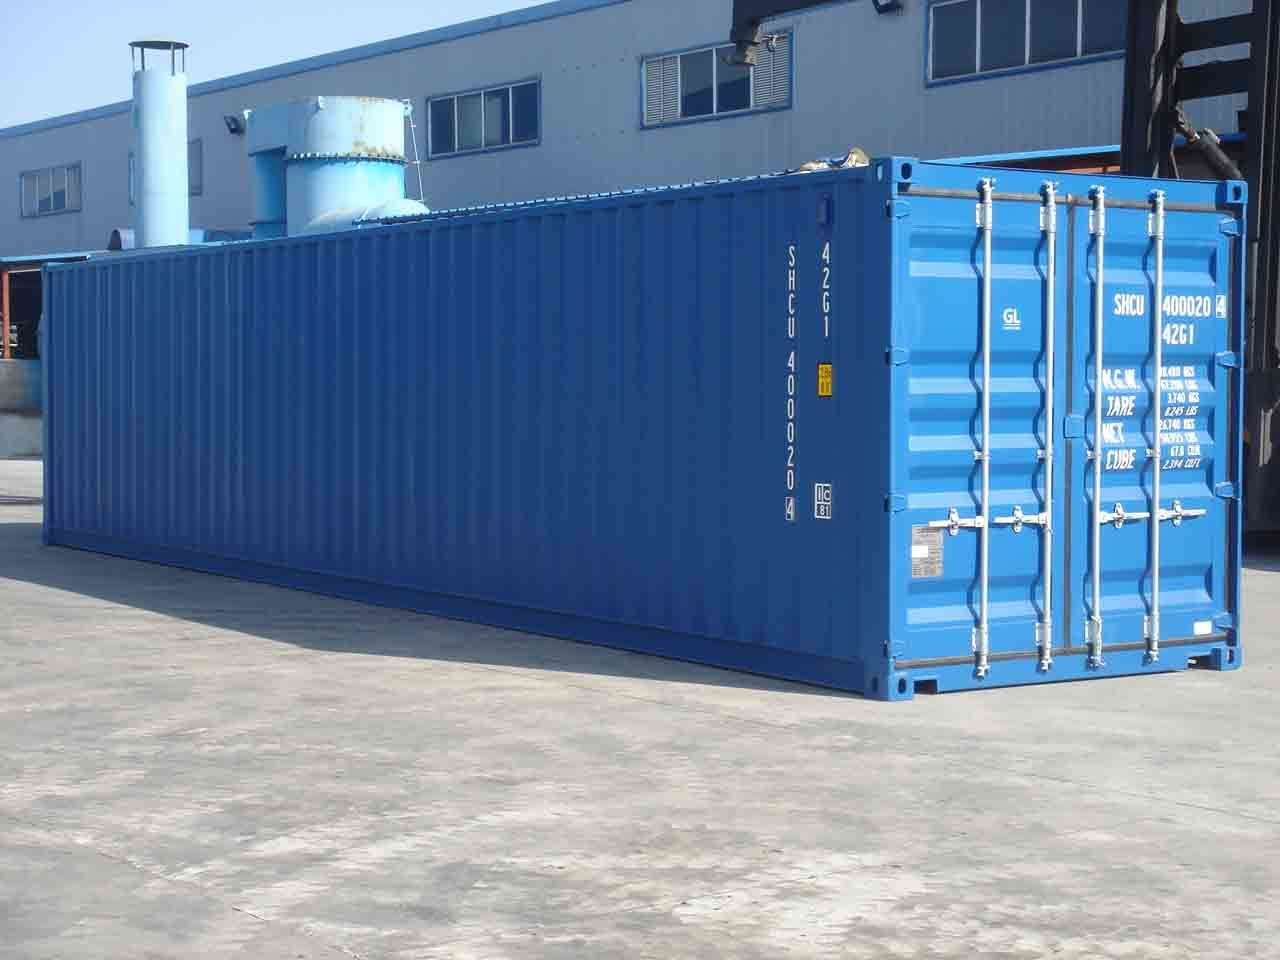 how to run plumbing in a shipping container